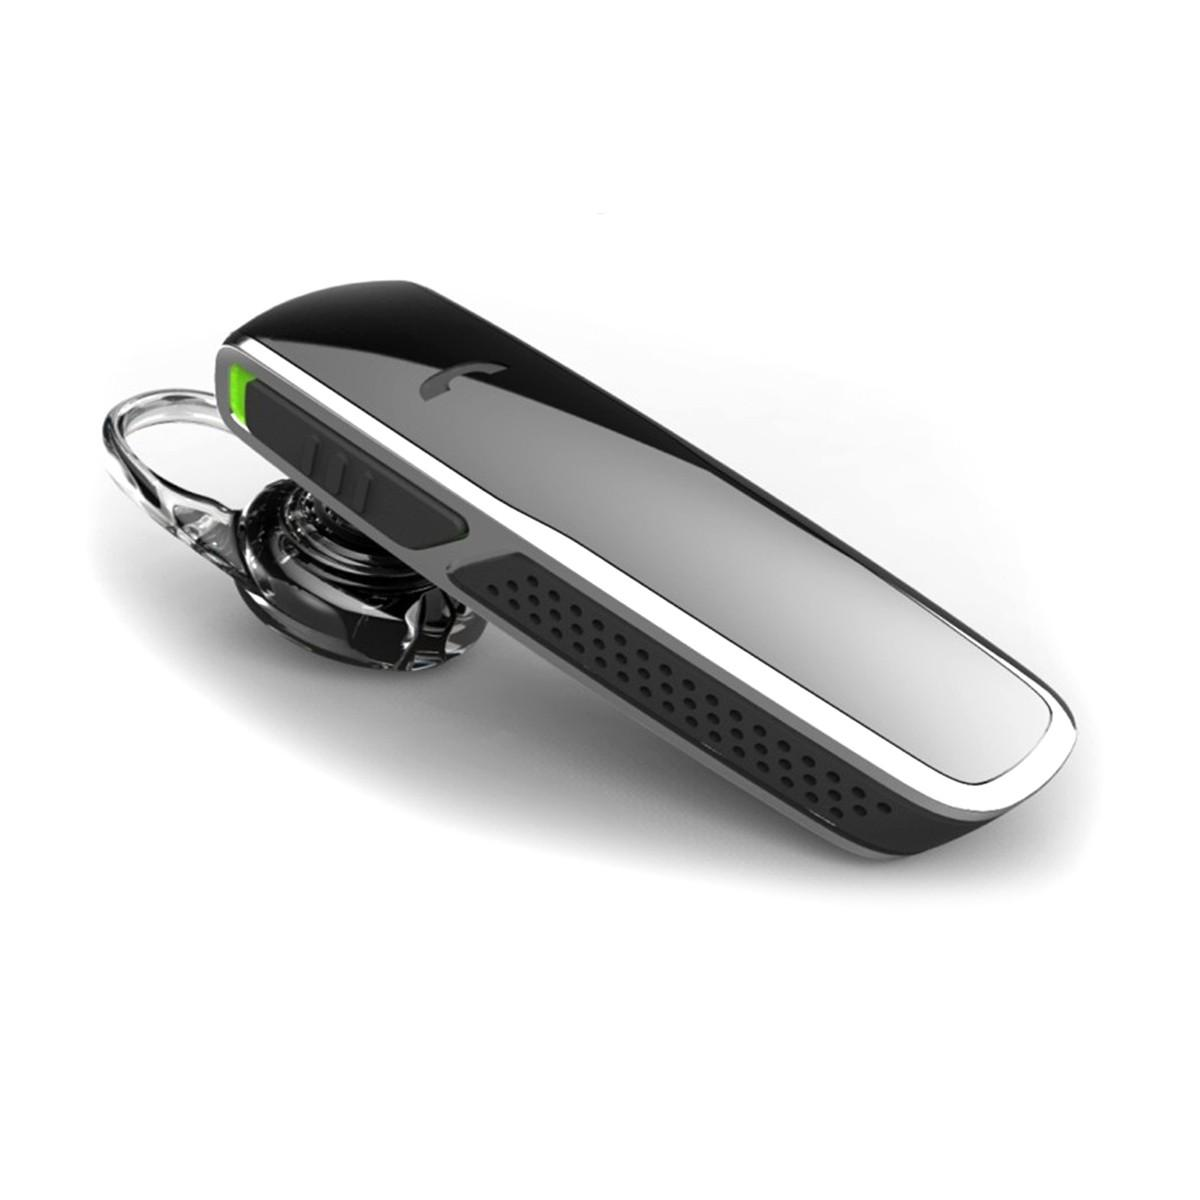 Lowest price! Plantronics M55 Wireless and Hands-Free Bluetooth Headset